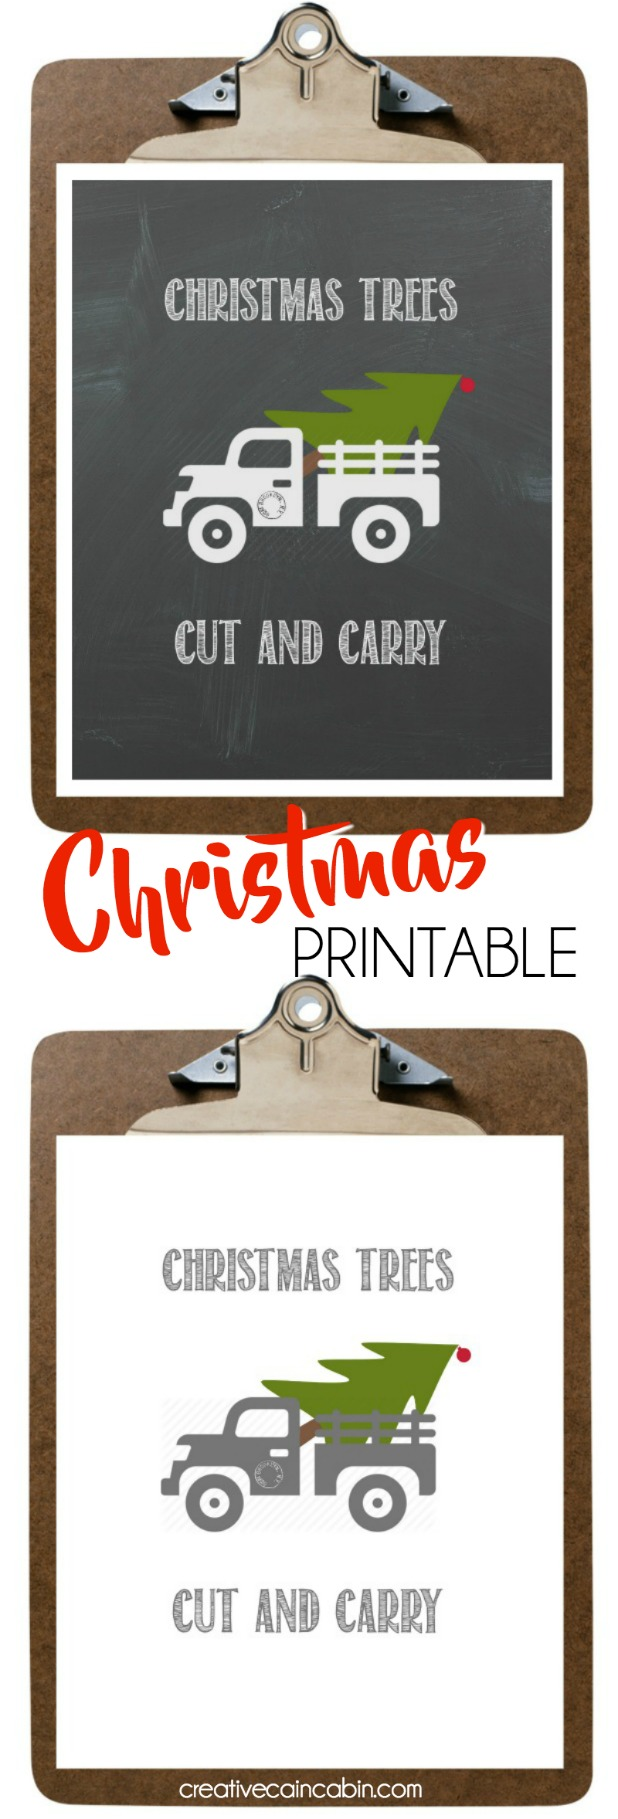 Christmas Tree Farm Truck Printable Cut and Carry